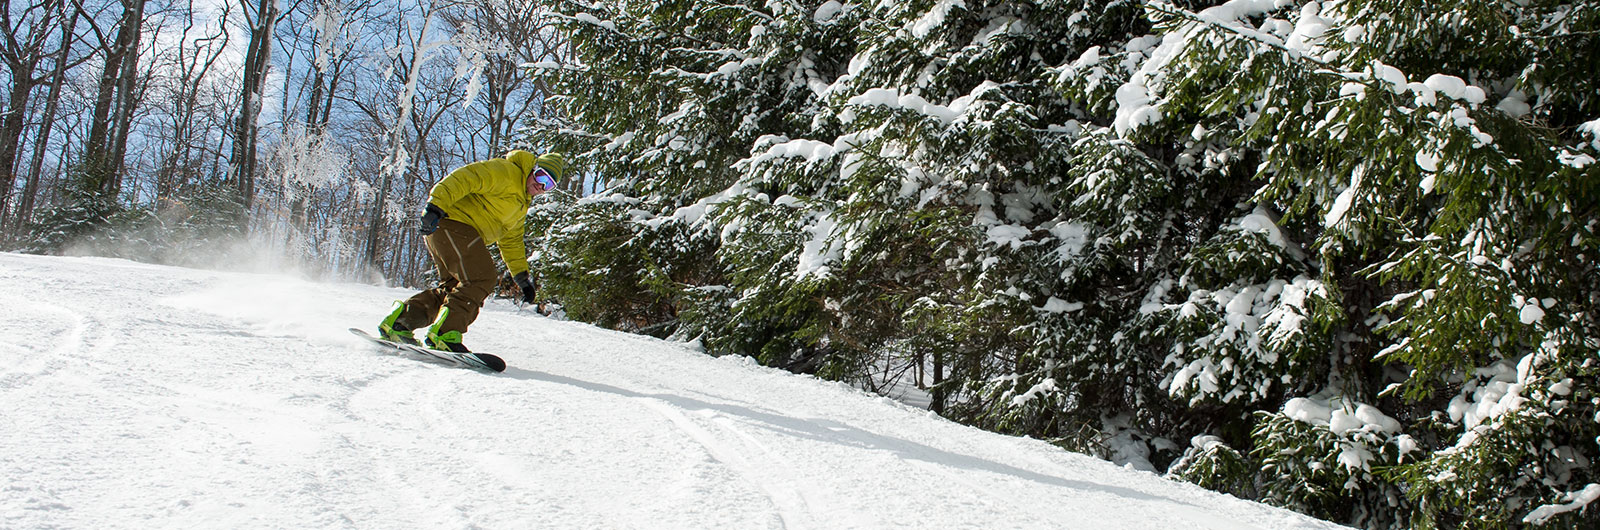 Snowboarder riding down slope by snowy trees